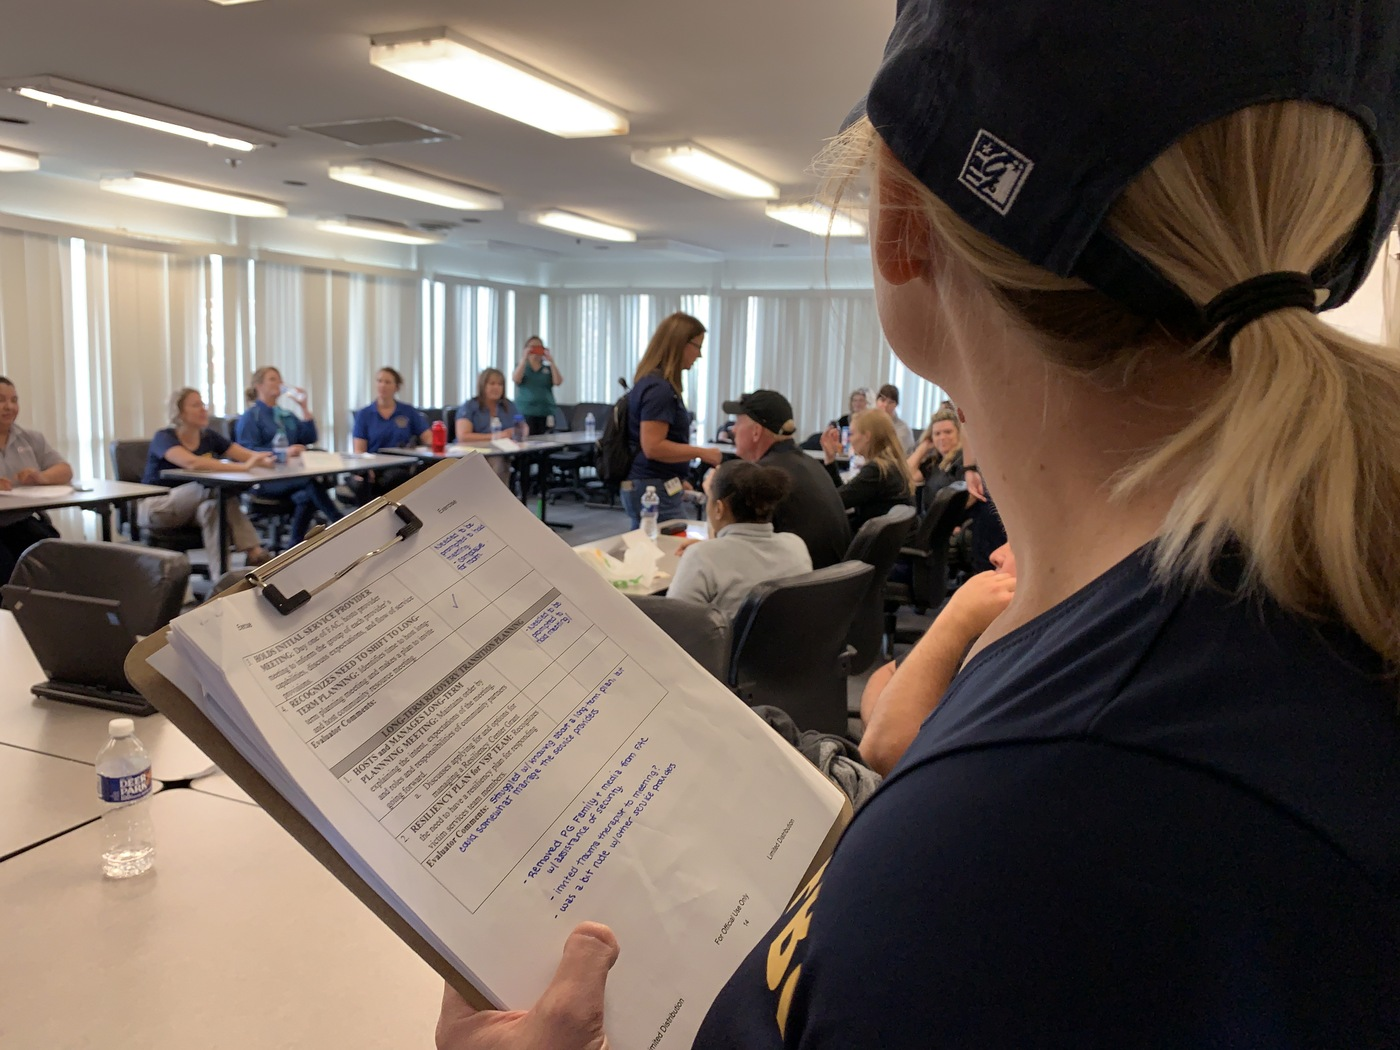 A Victim Services Division program manager evaluates students during a mock mass-casualty event September 25, 2019, at the FBI Training Academy in Quantico, Virginia. The exercise culminated ELEVATE-APB training for victim service providers.